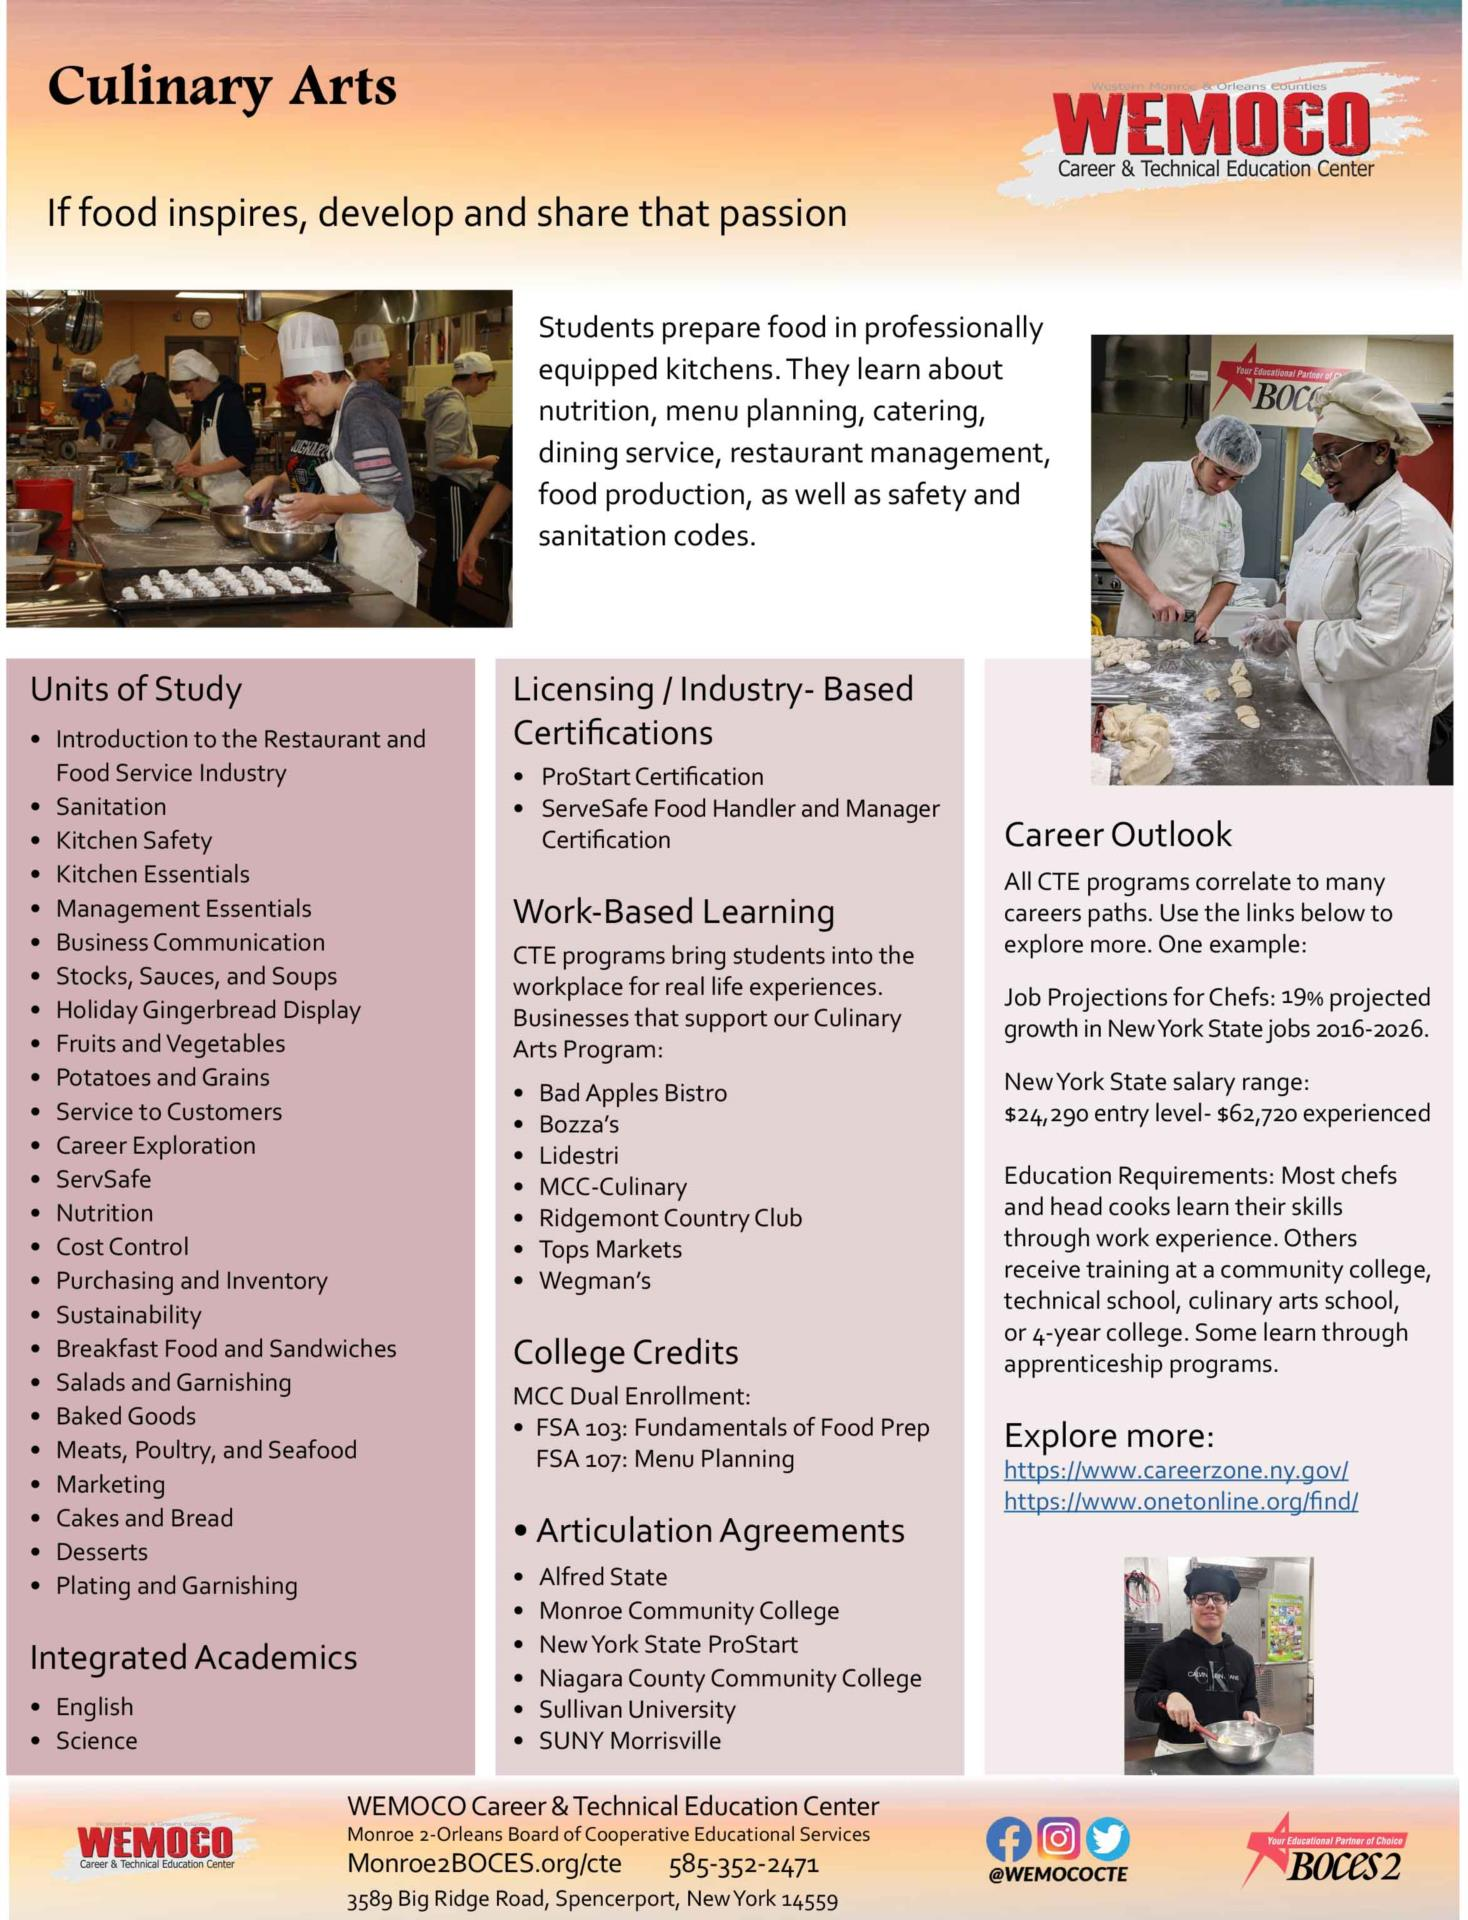 Download a PDF overview of the Culinary Arts program information